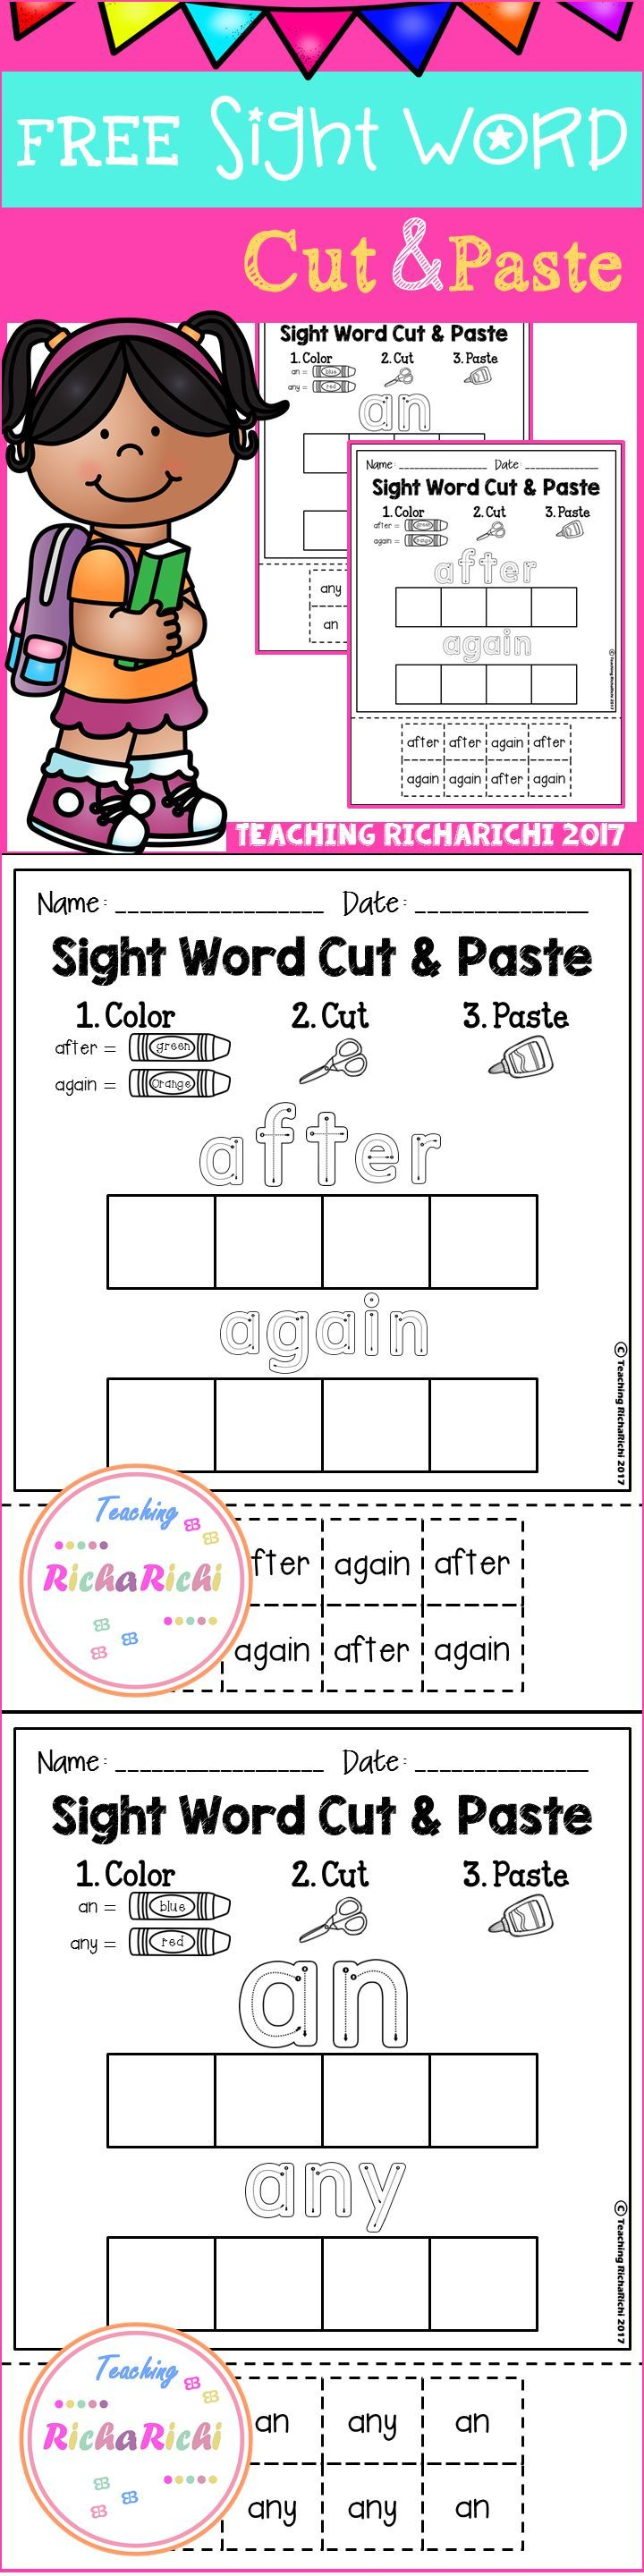 worksheet Pre K Sight Words Worksheets freebies free kindergarten activities pre k sight word cut and paste worksheets first grade inside you will find 3 pages of each page